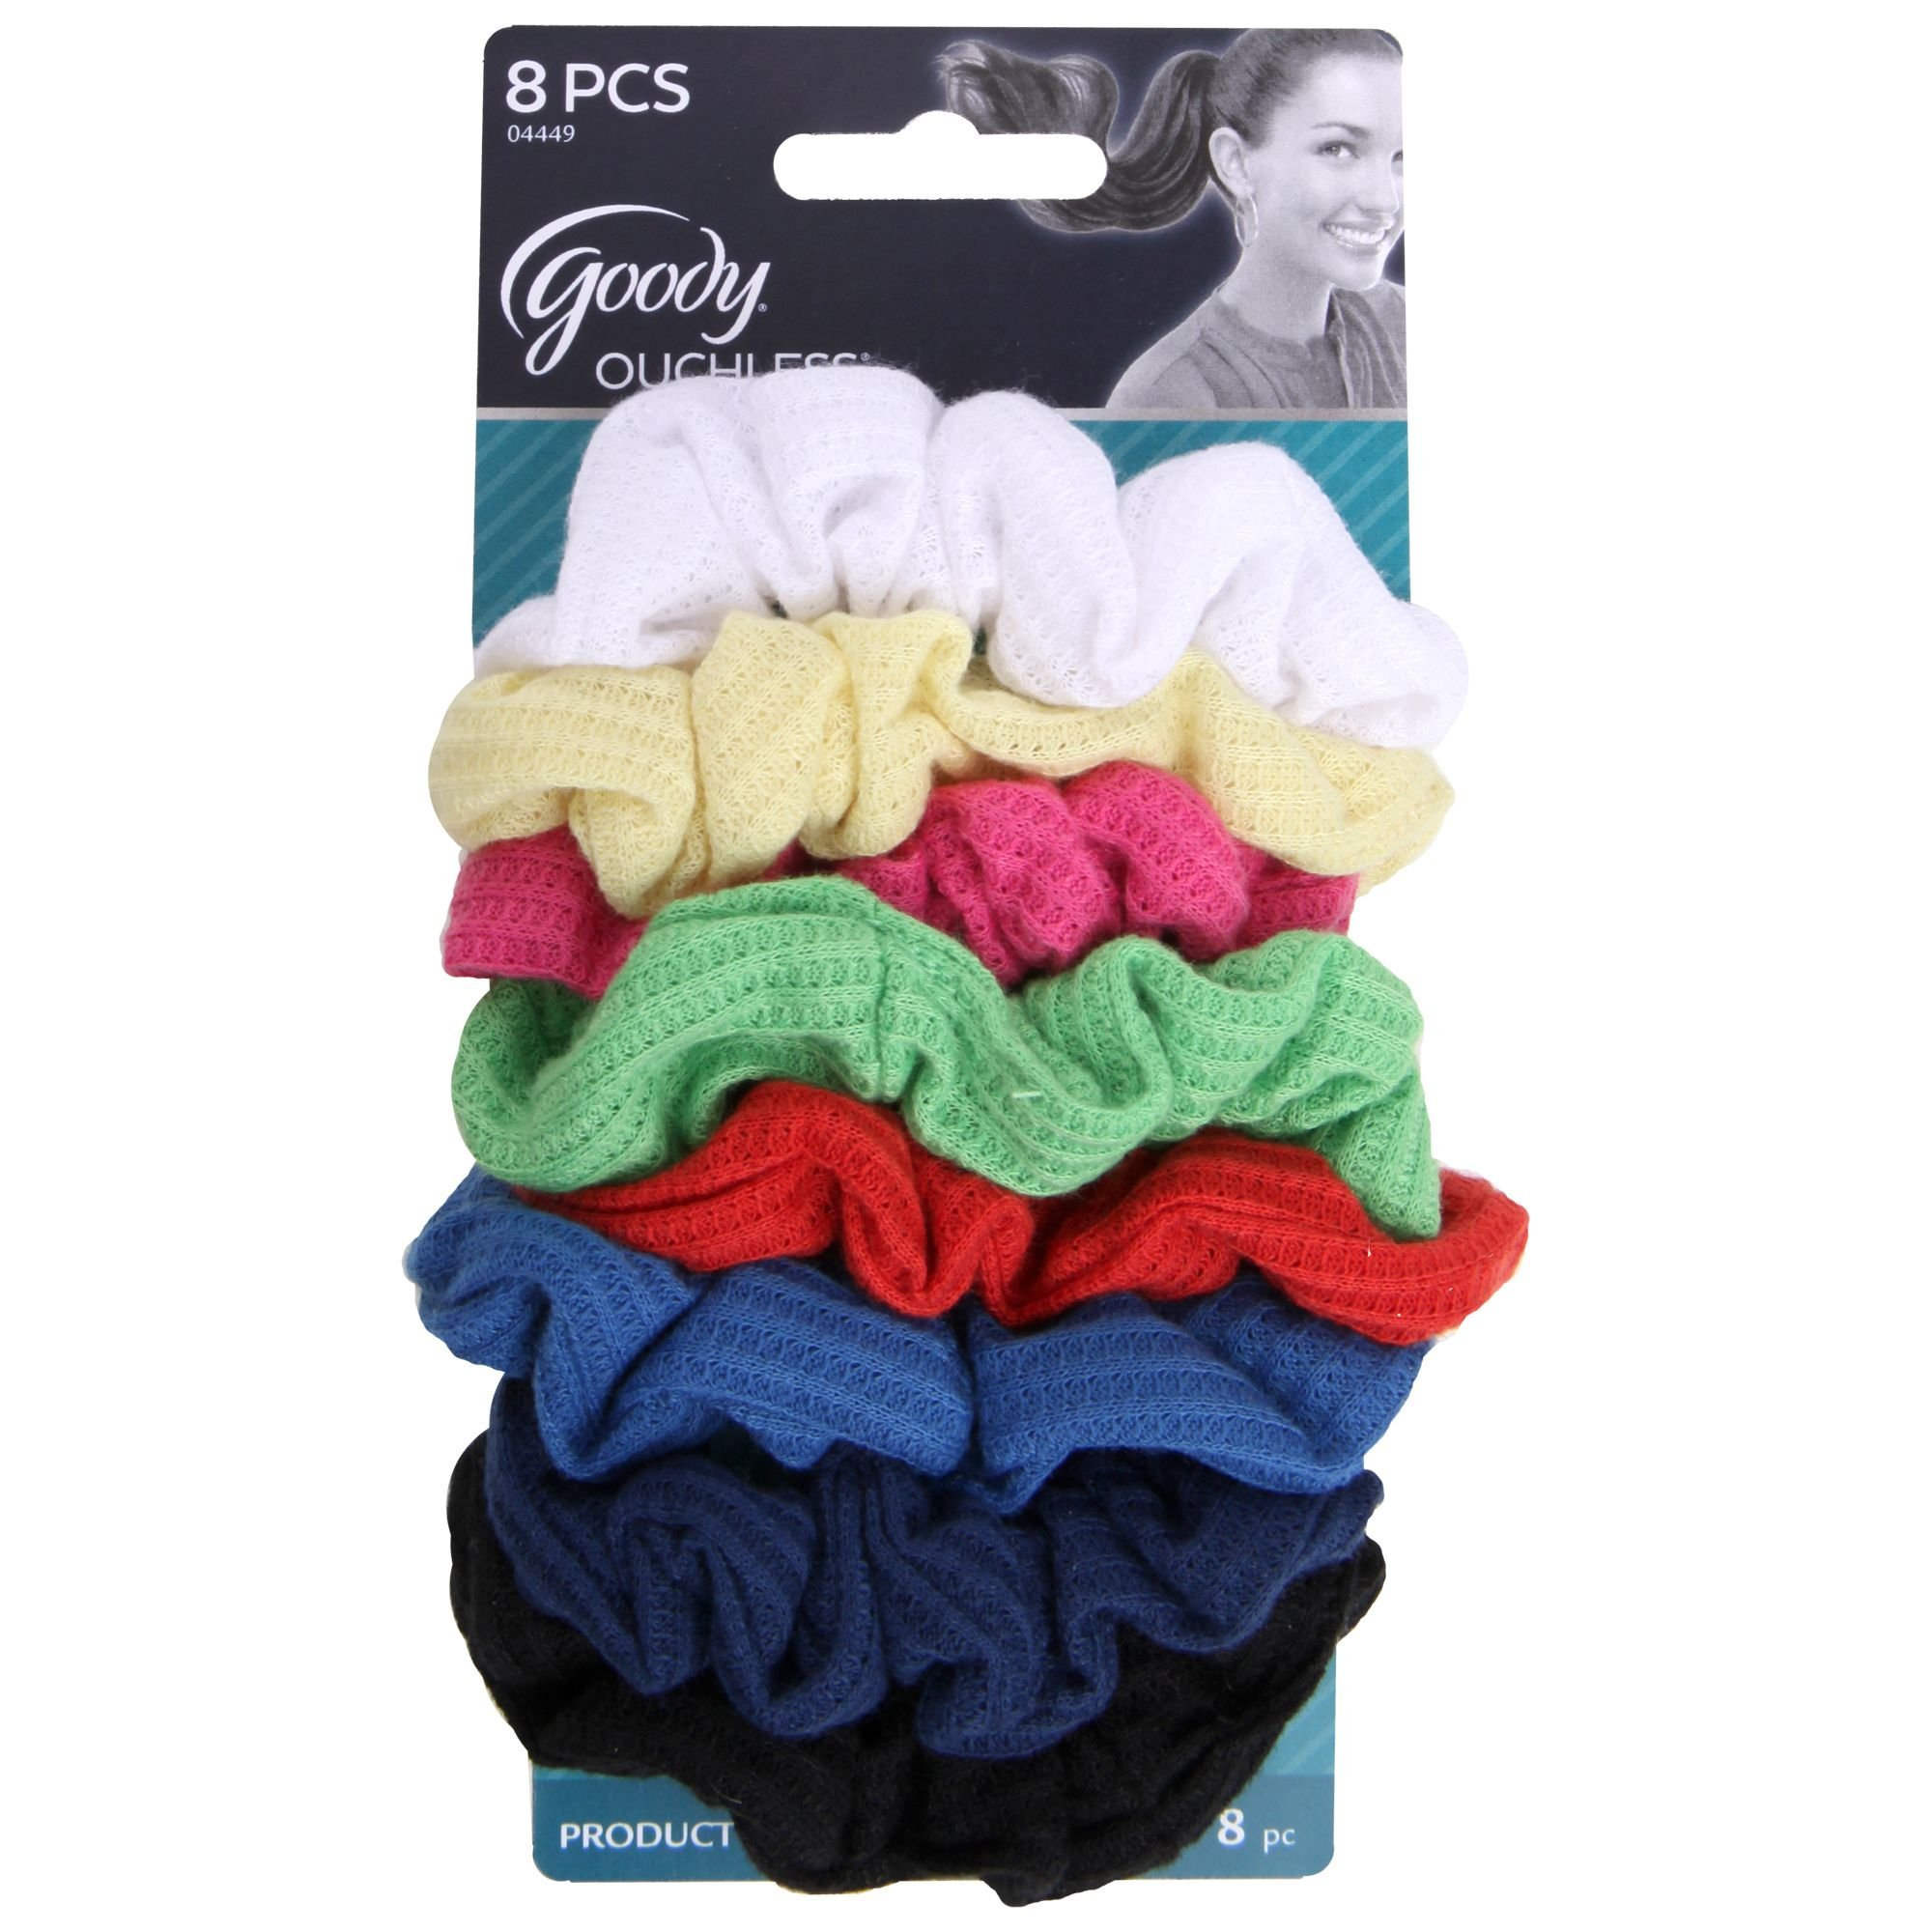 Goody - Ouchless Ribbed Hair Scrunchies/Wraps - 8 Pk, Assorted Colors